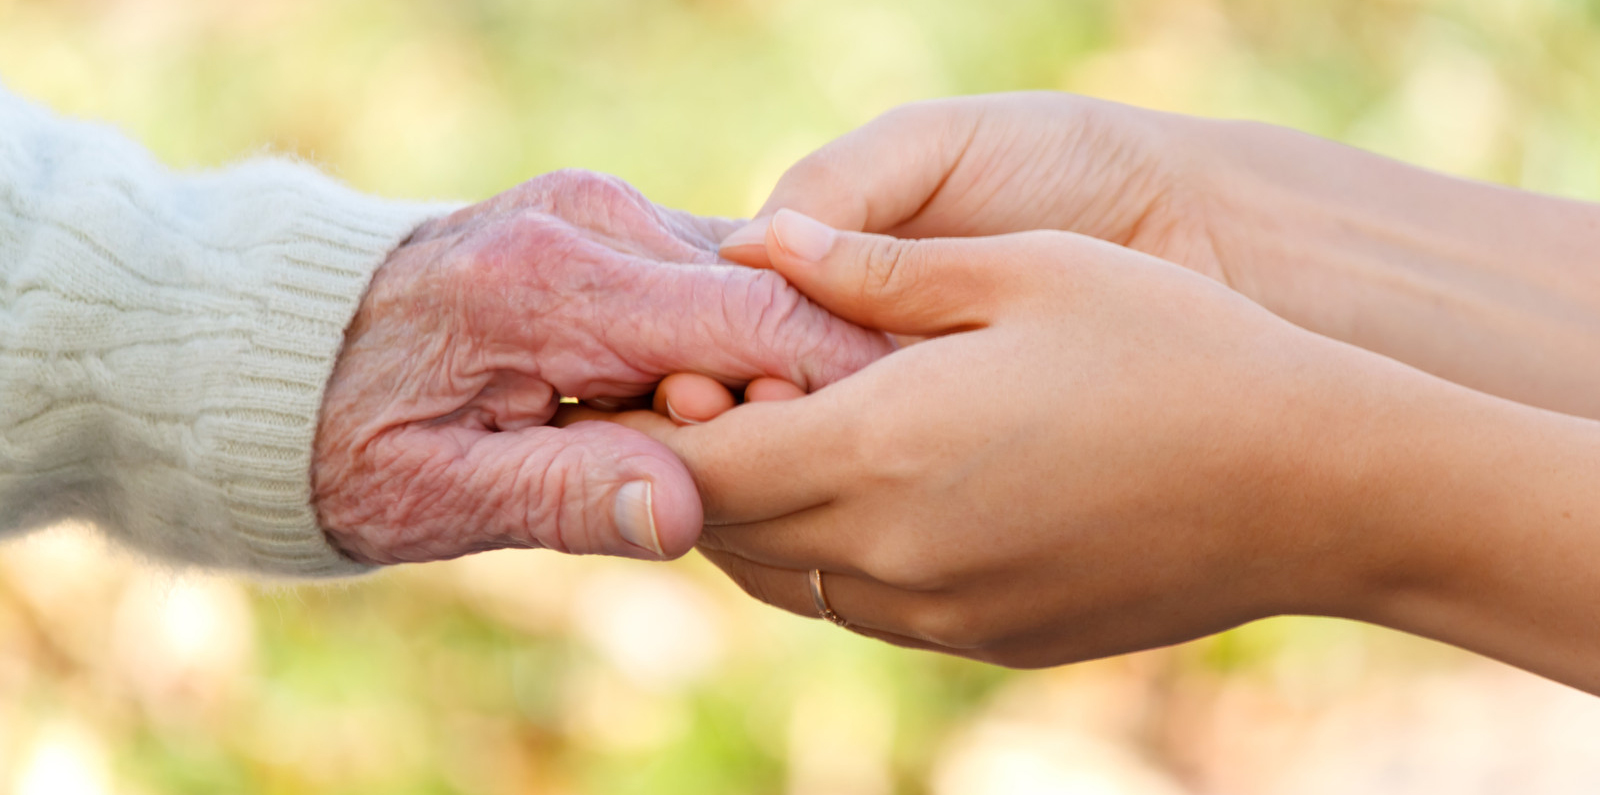 Assisted Living Community Benefits